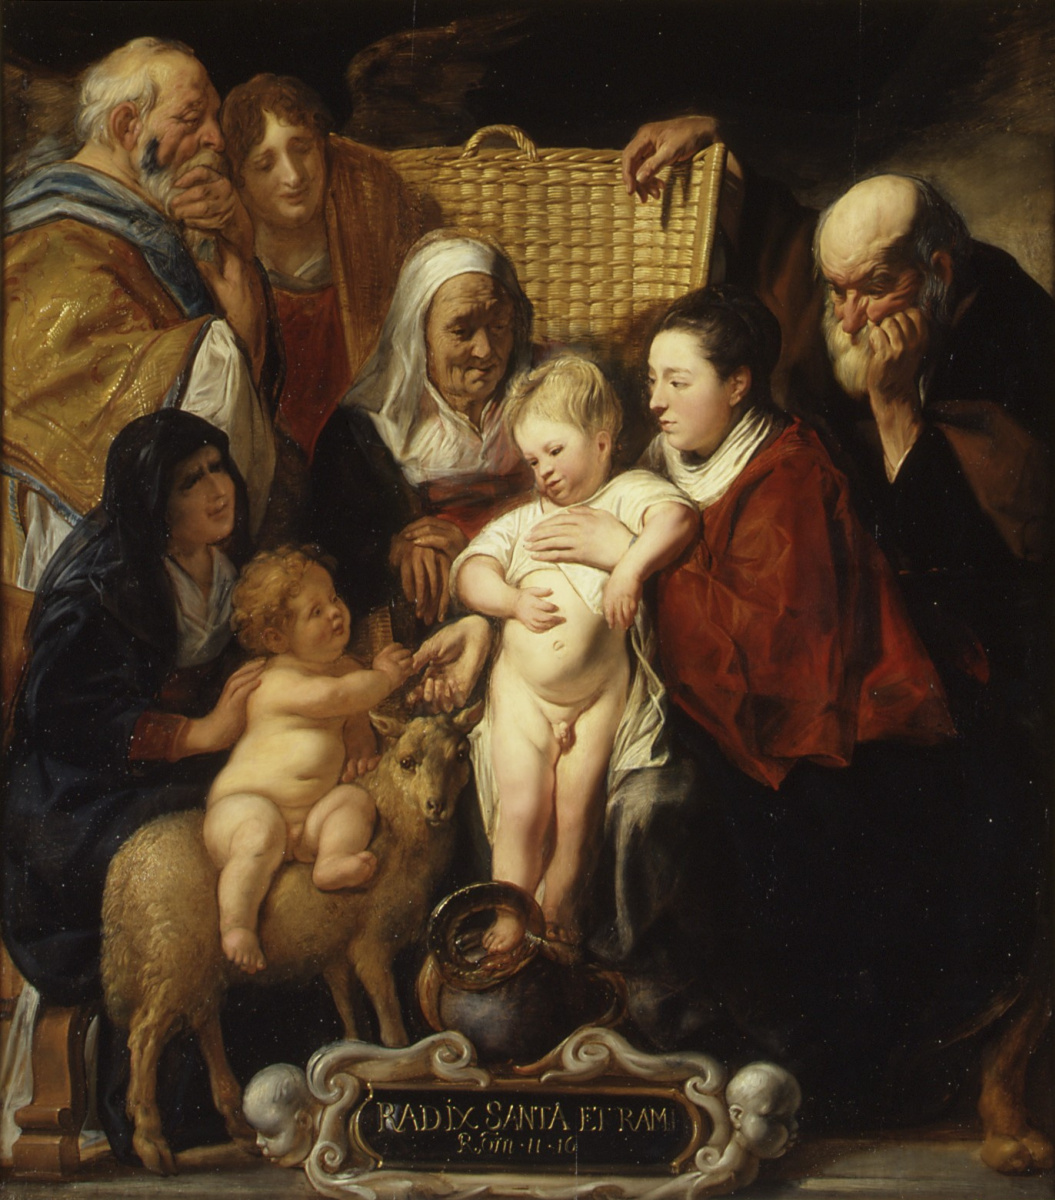 Якоб Йорданс. Holy Family with St. Anne, John the Baptist and His Parents